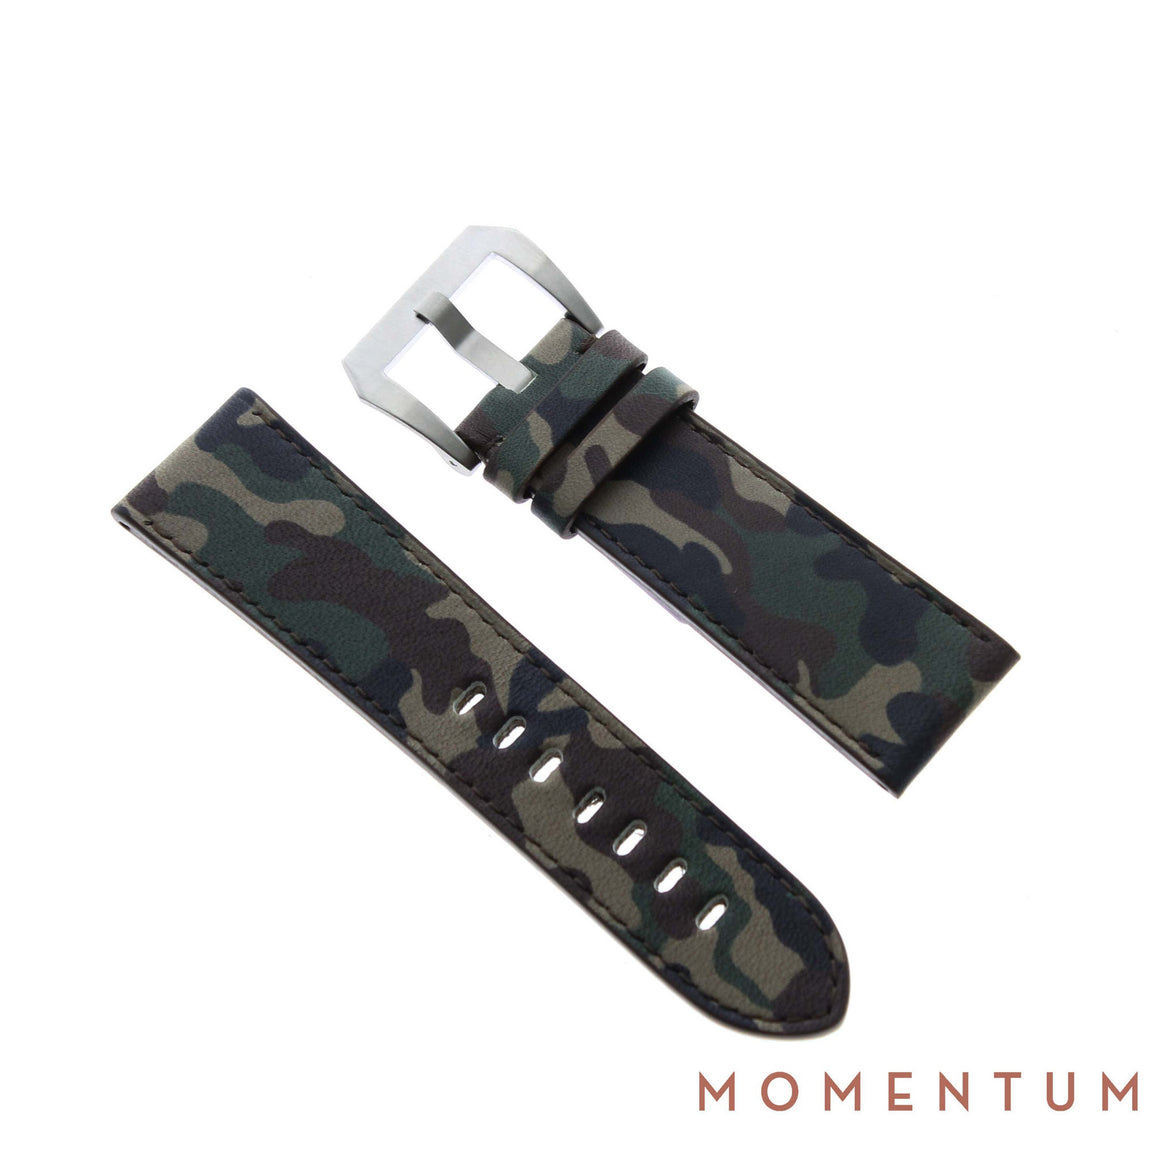 Vintage Strap - Brown Camouflage 24mm - Calf Leather - Momentum Dubai